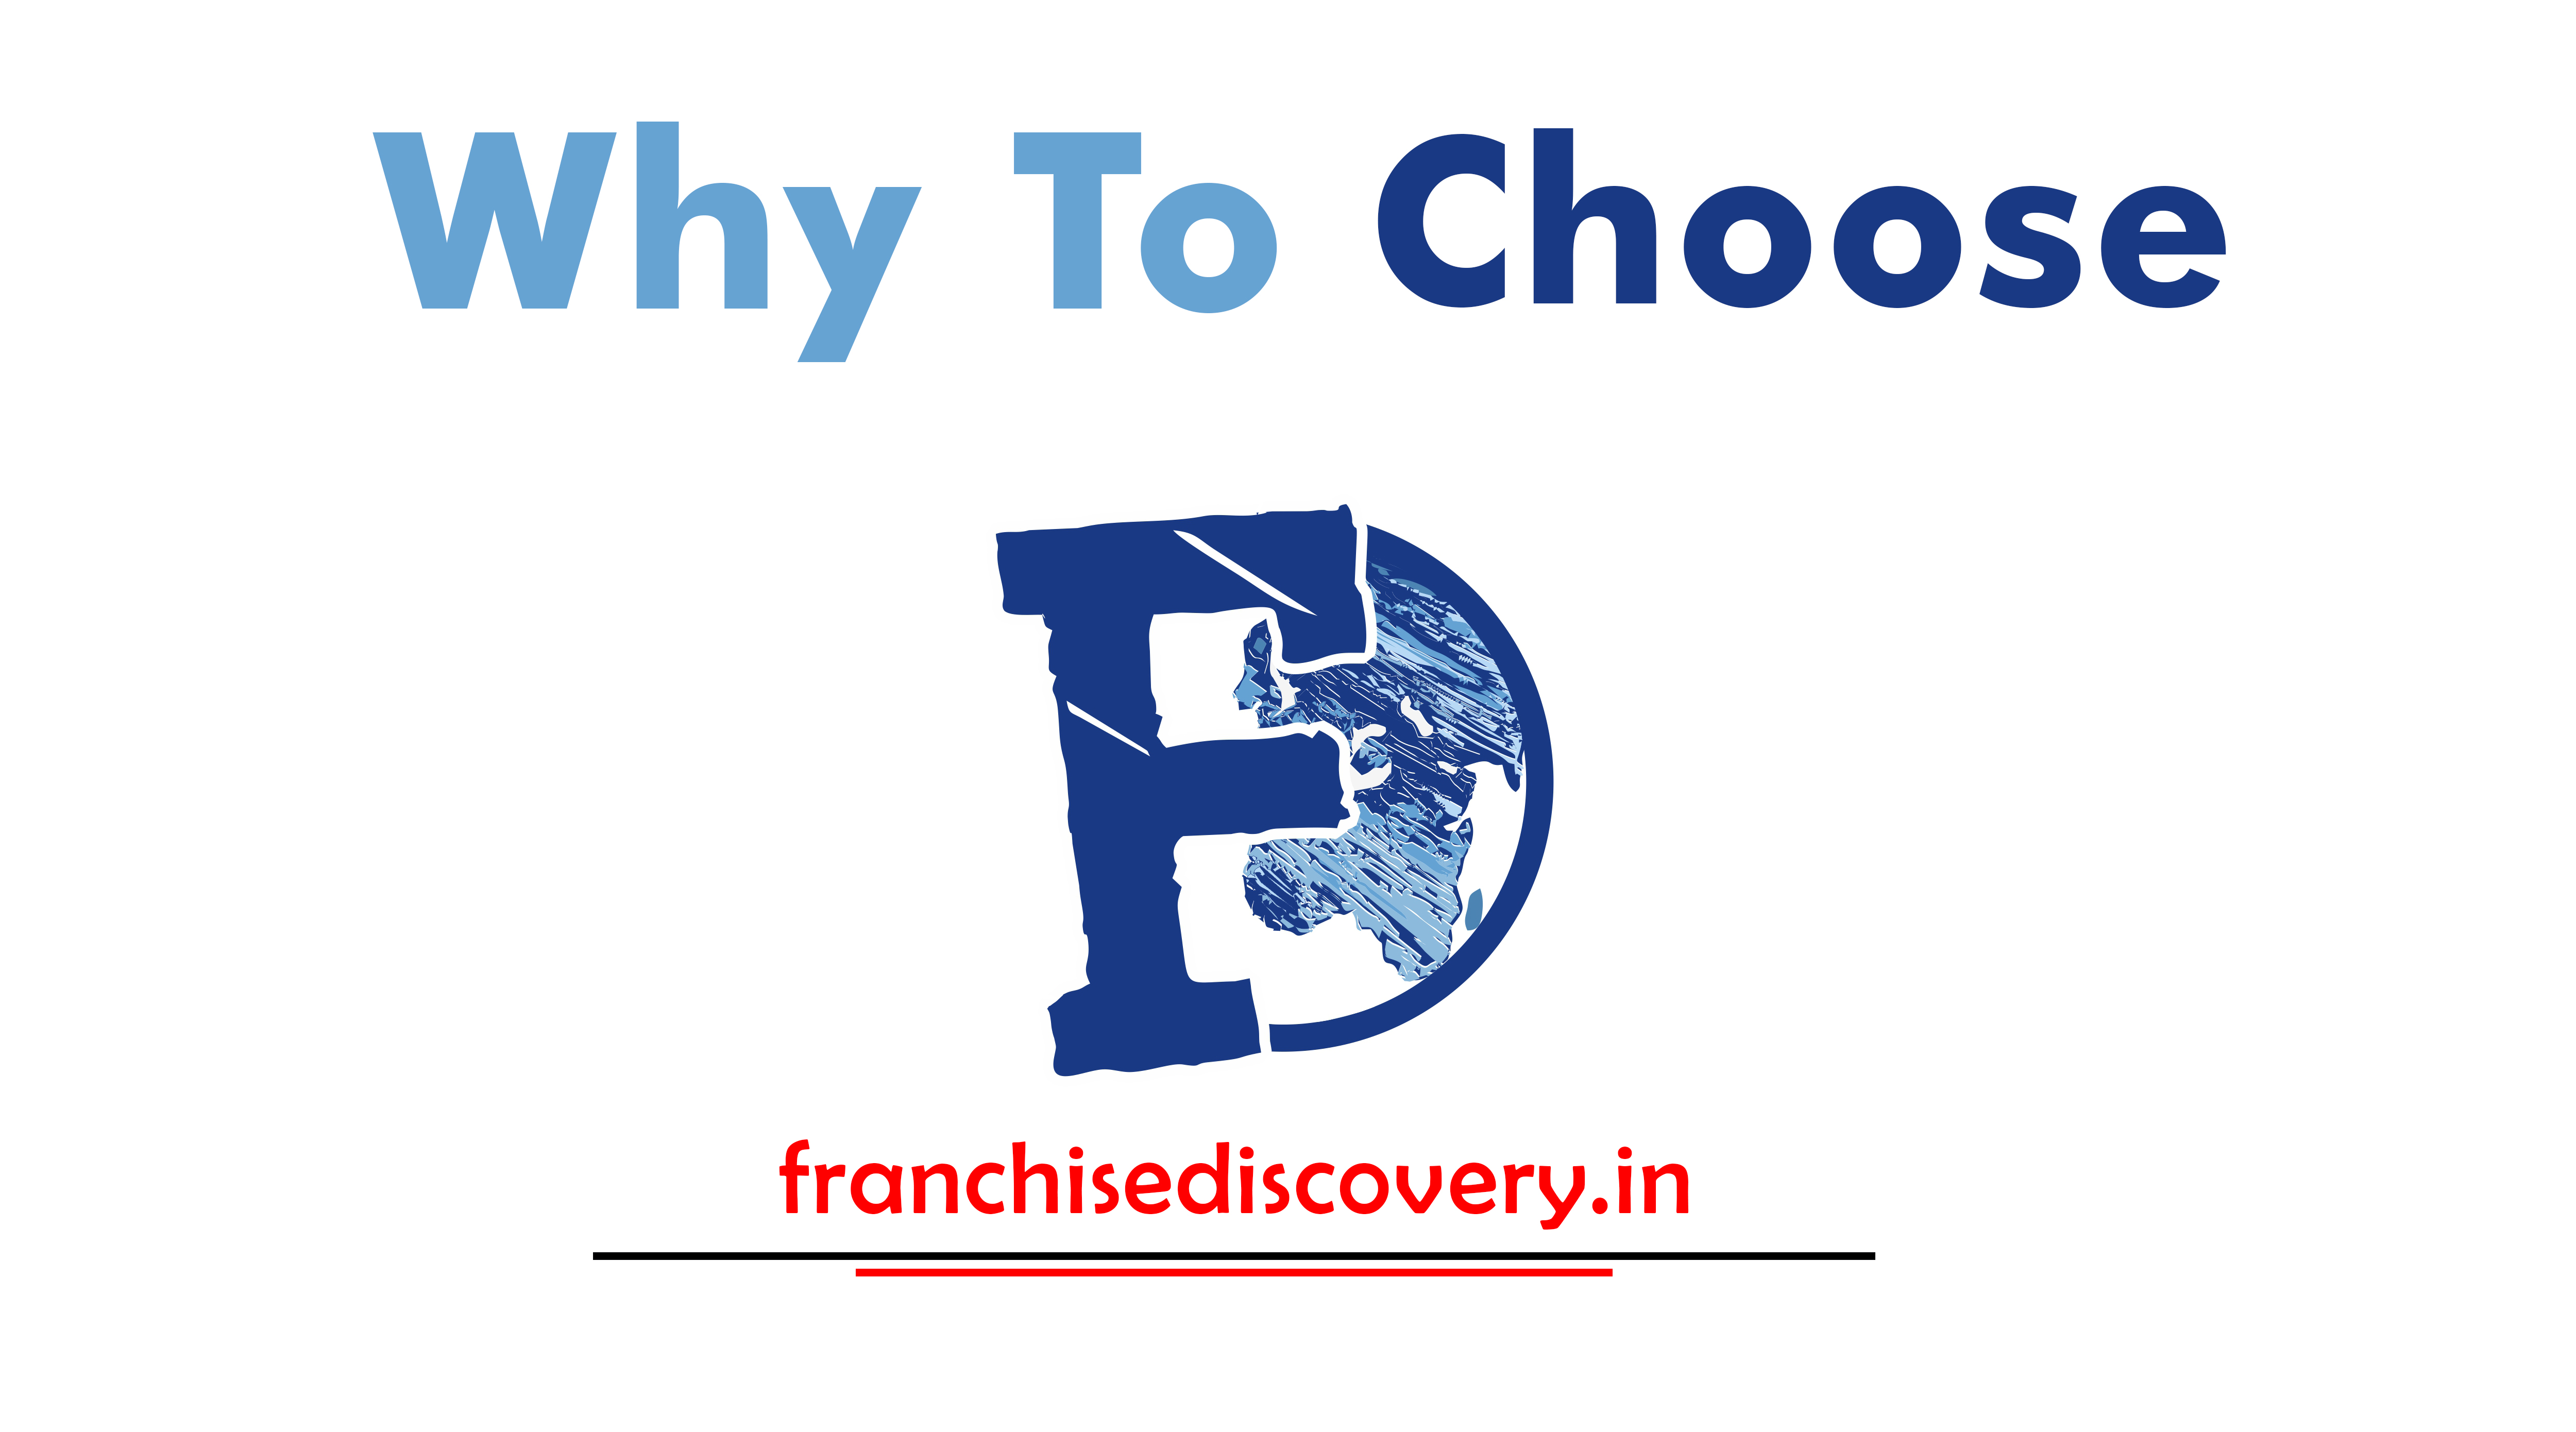 Why to choose Franchise Discovery ?